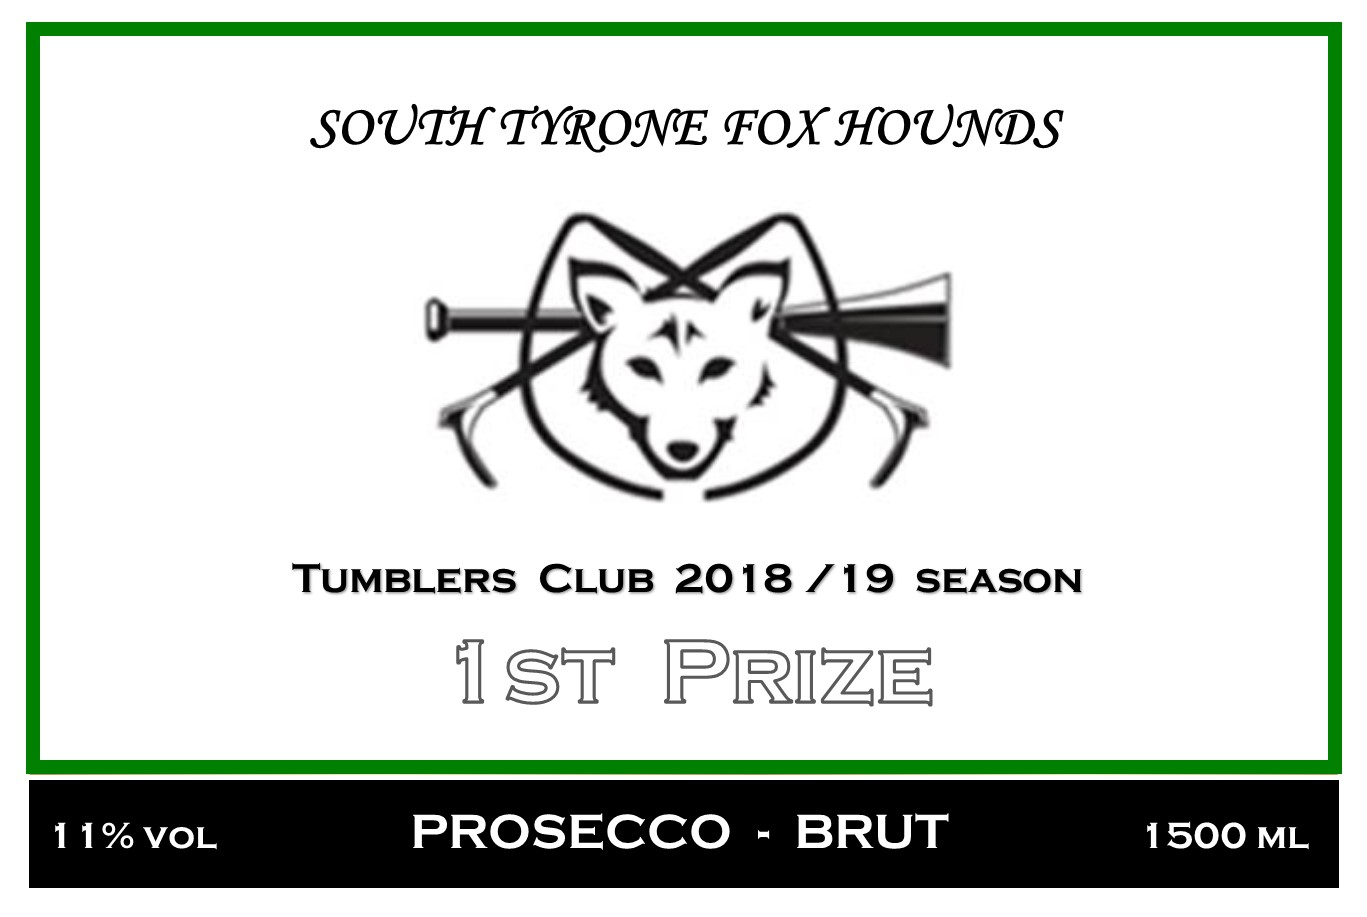 SOUTH TYRONE FOX HOUNDS final magnum